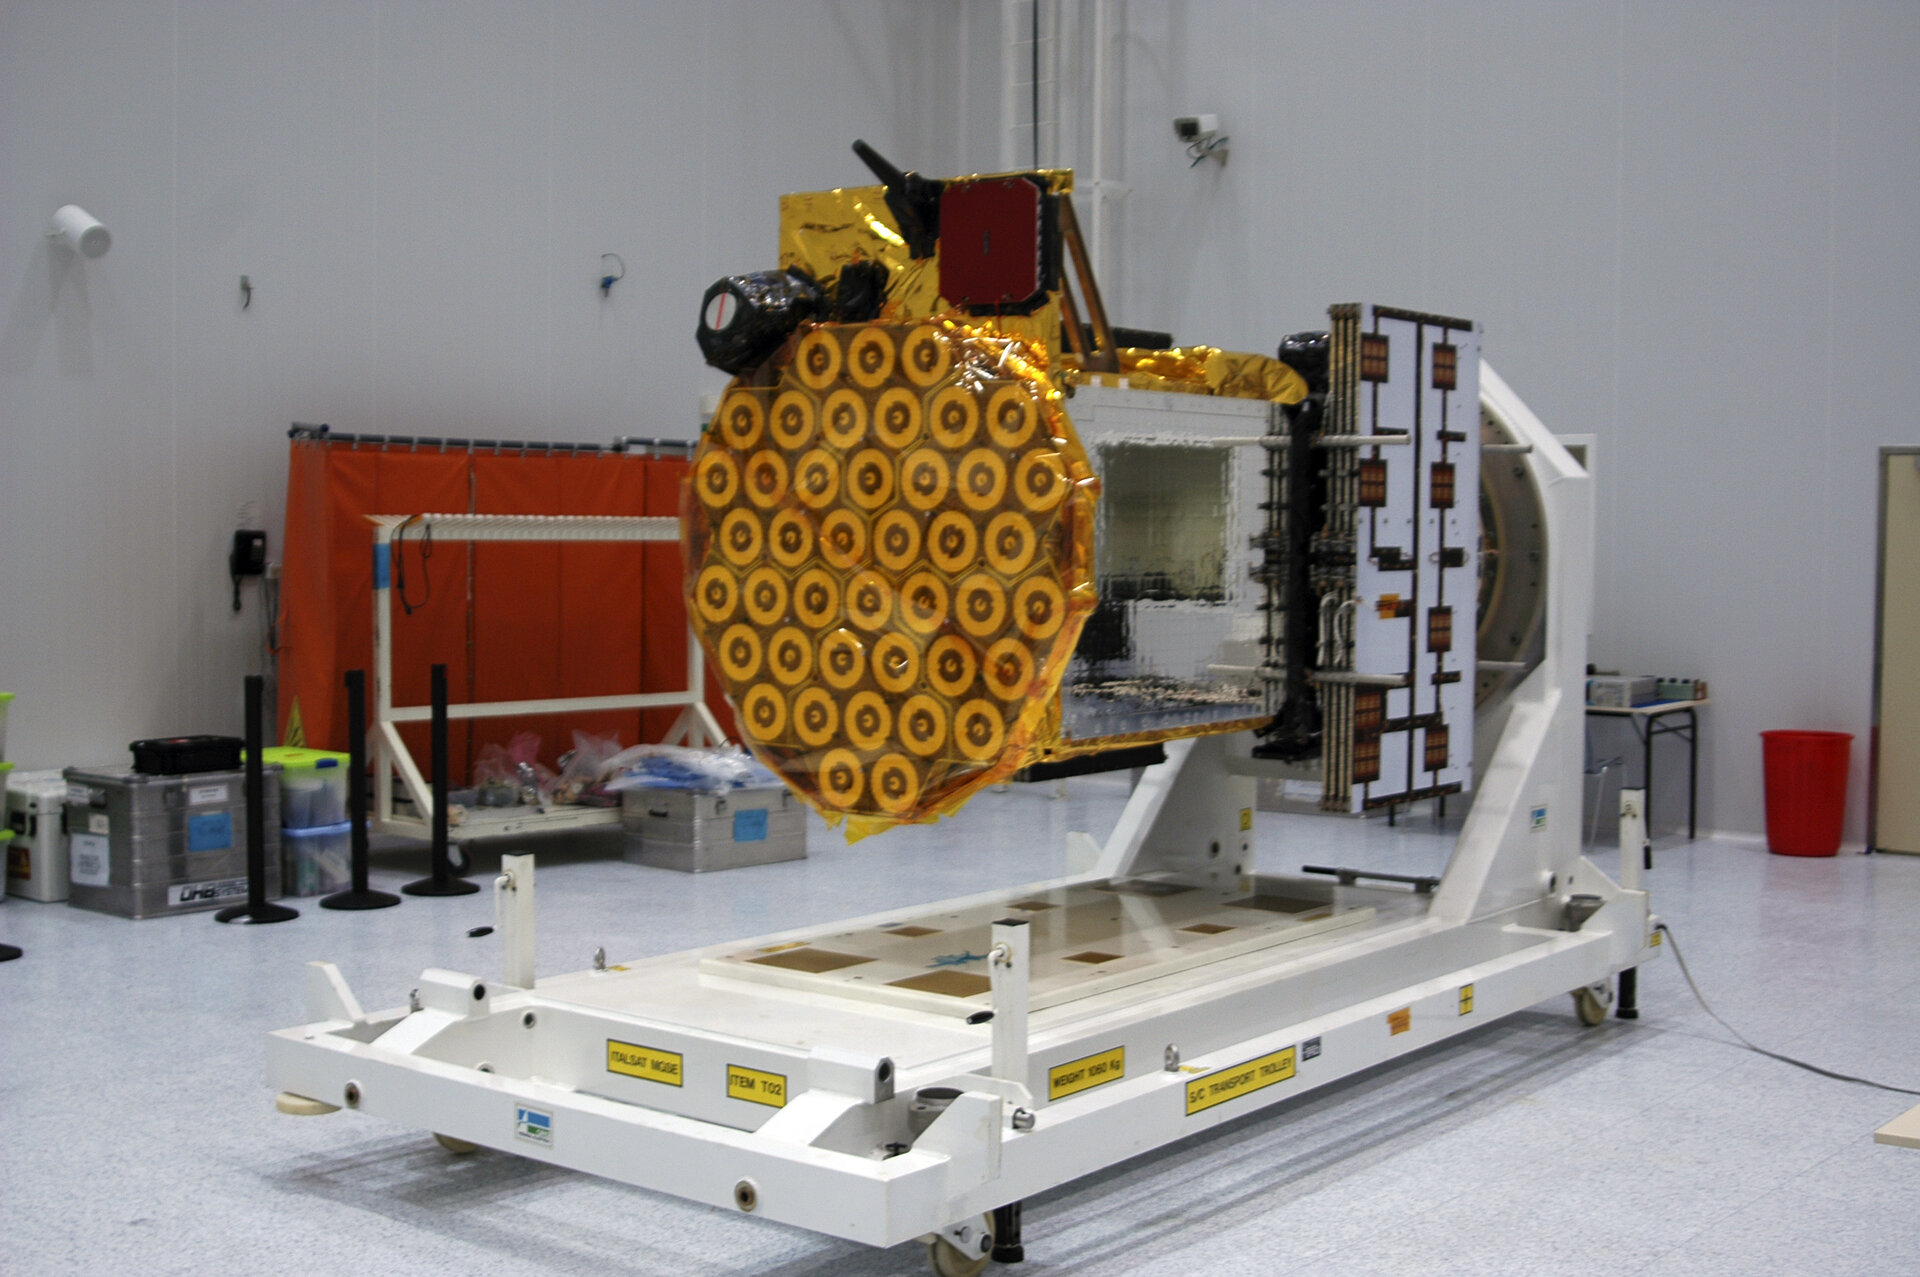 GIOVE-B in clean room